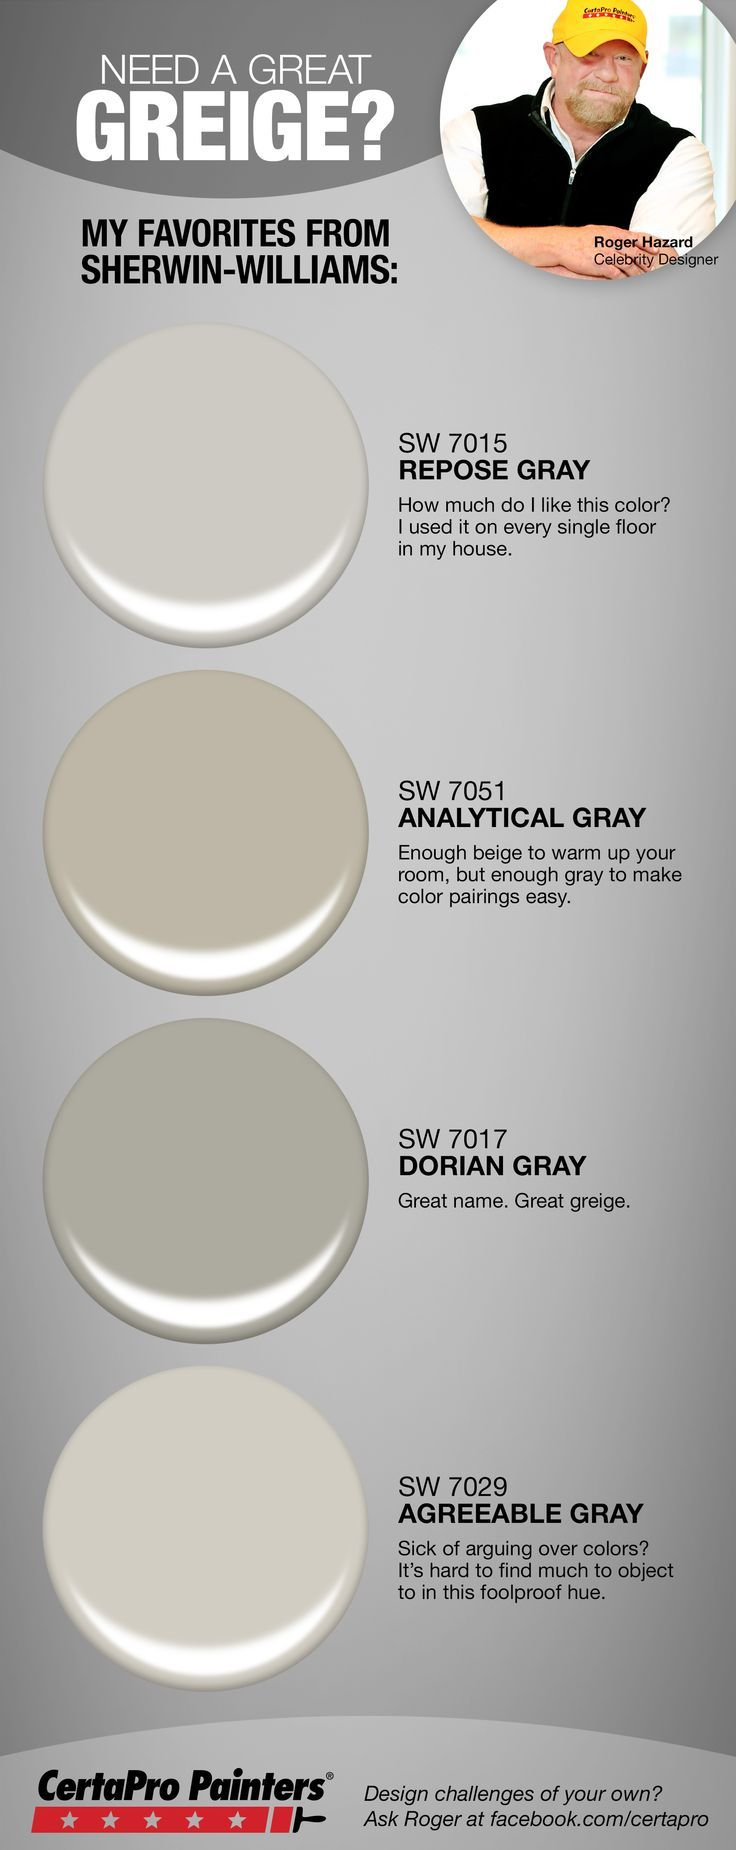 25 best ideas about neutral paint colors on pinterest neutral paint neutral wall colors and. Black Bedroom Furniture Sets. Home Design Ideas